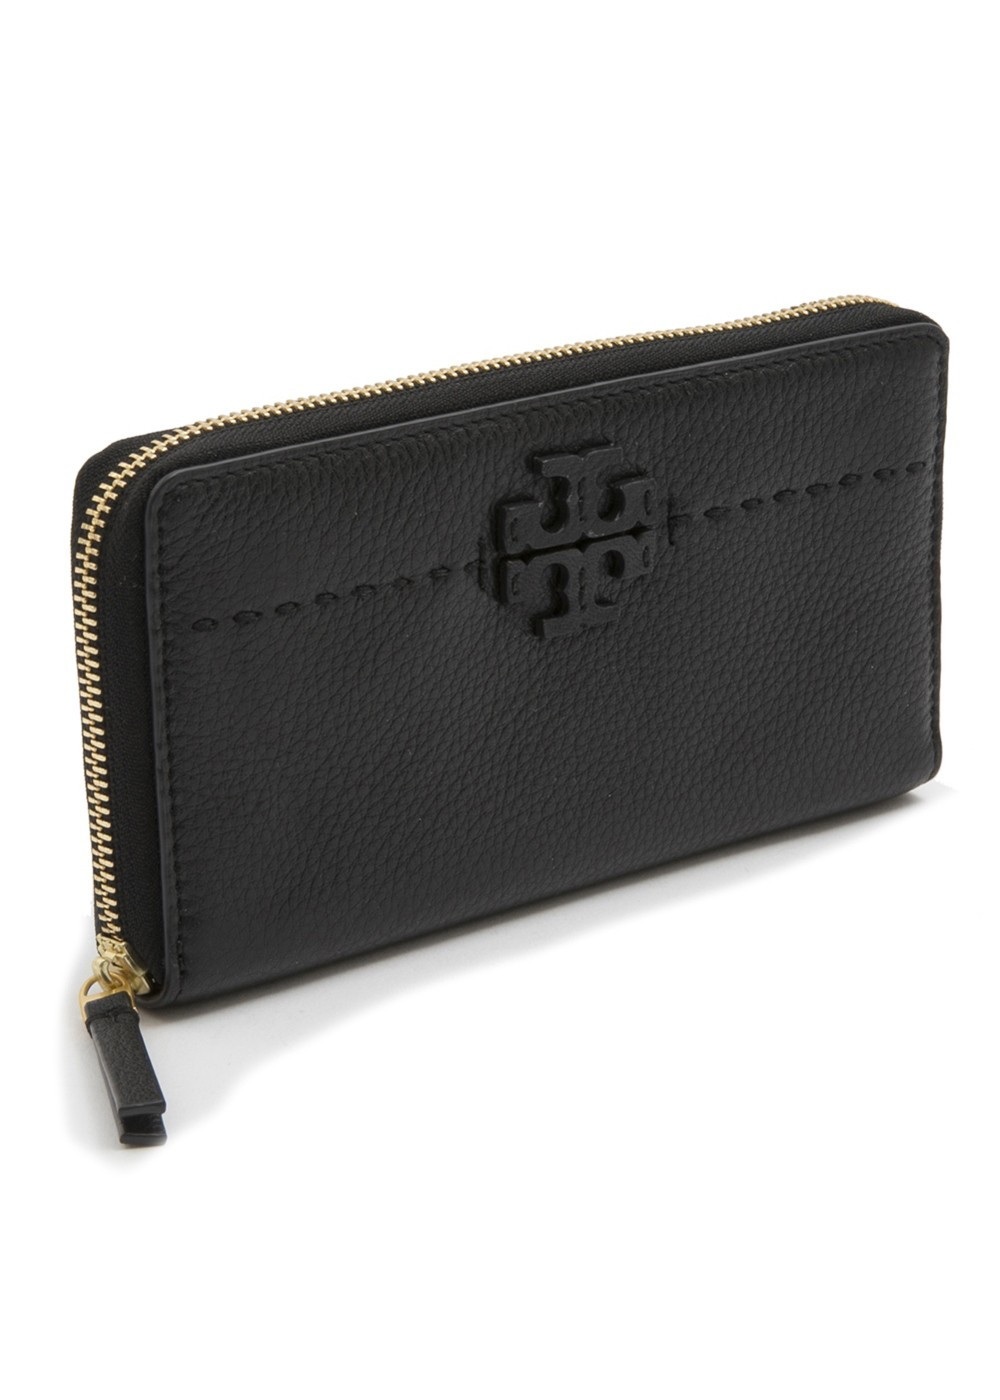 TORY BURCH|トリバーチ|MCGRAW|マックグロー|ZIP CONTINENTAL WALLET